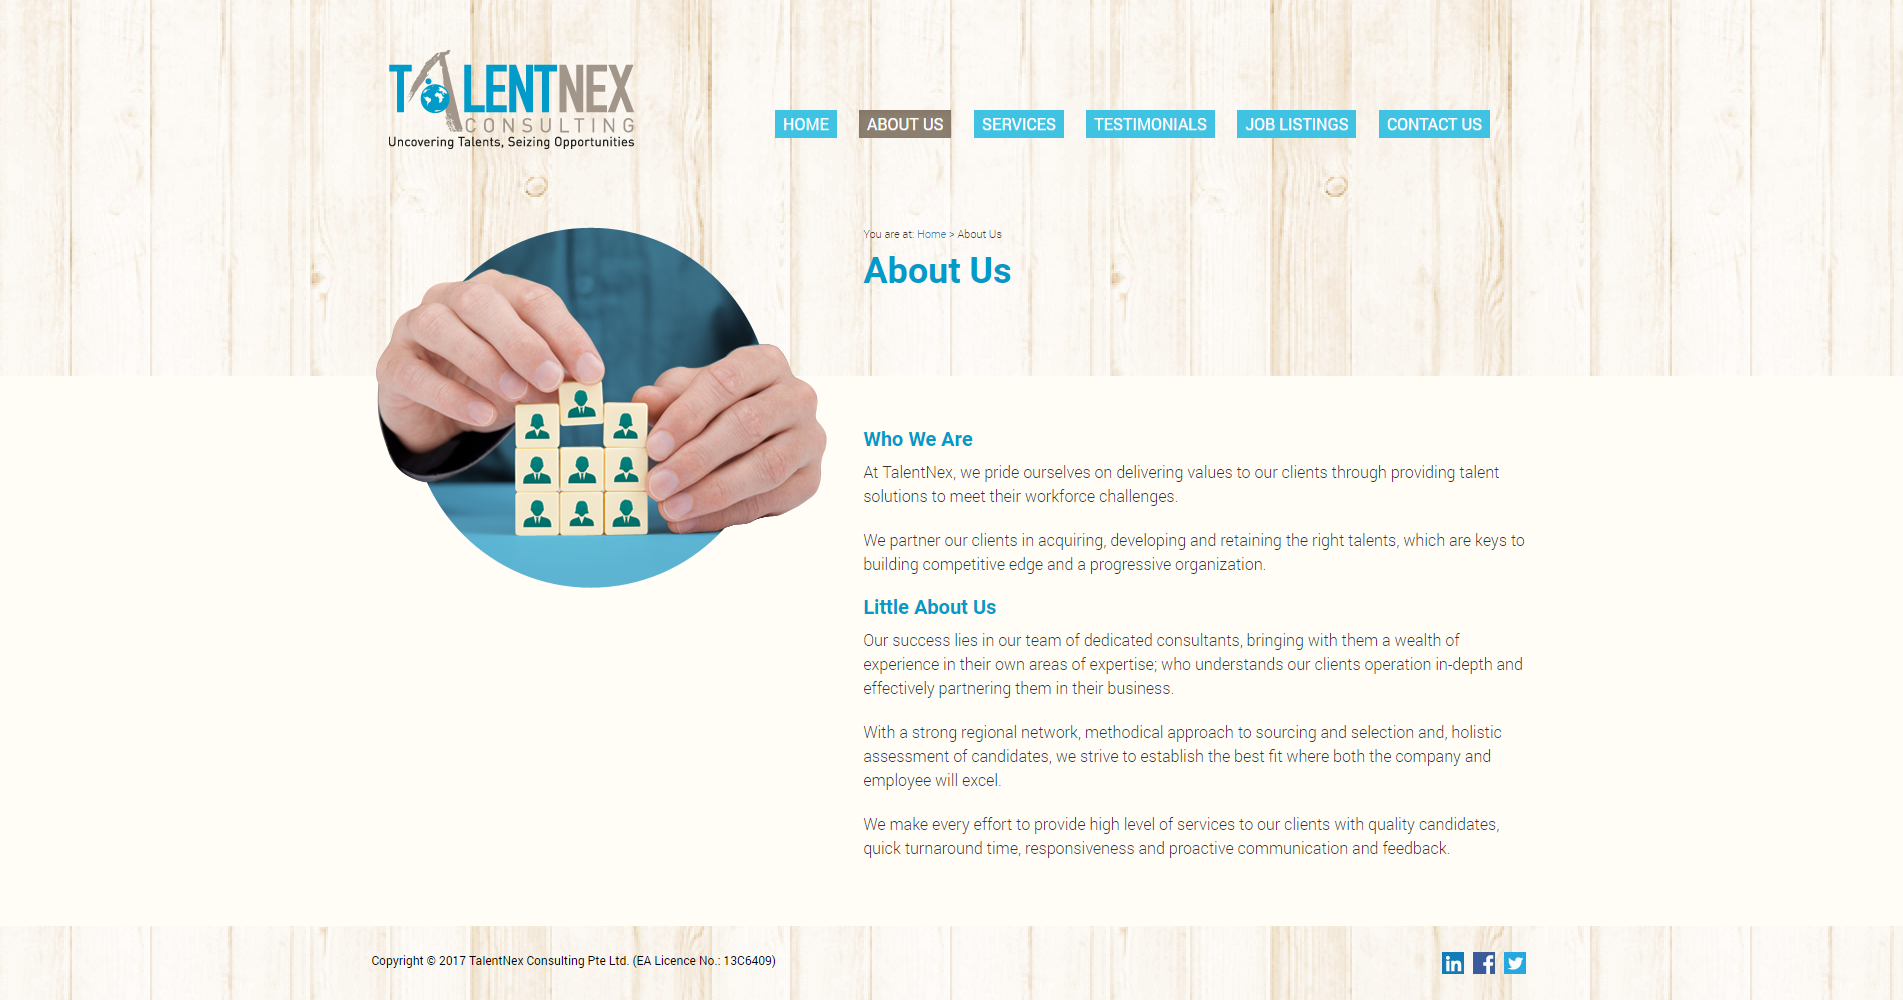 About Us Talentnex